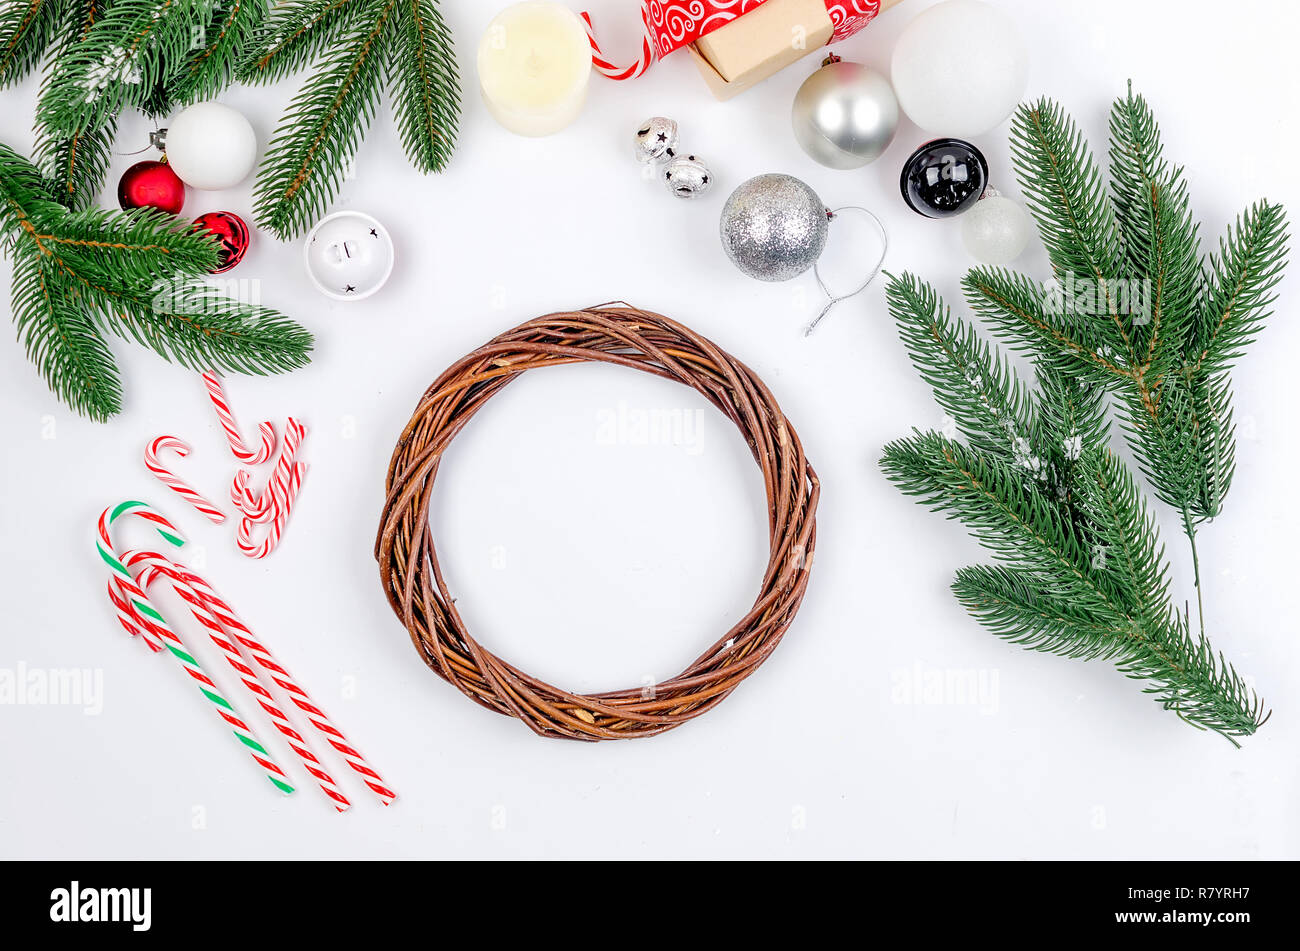 Making Craft Xmas Wreath Christmas Handmade Diy Background Fir Branches Cones Bells Balls Top View Of White Wooden Table Stock Photo Alamy